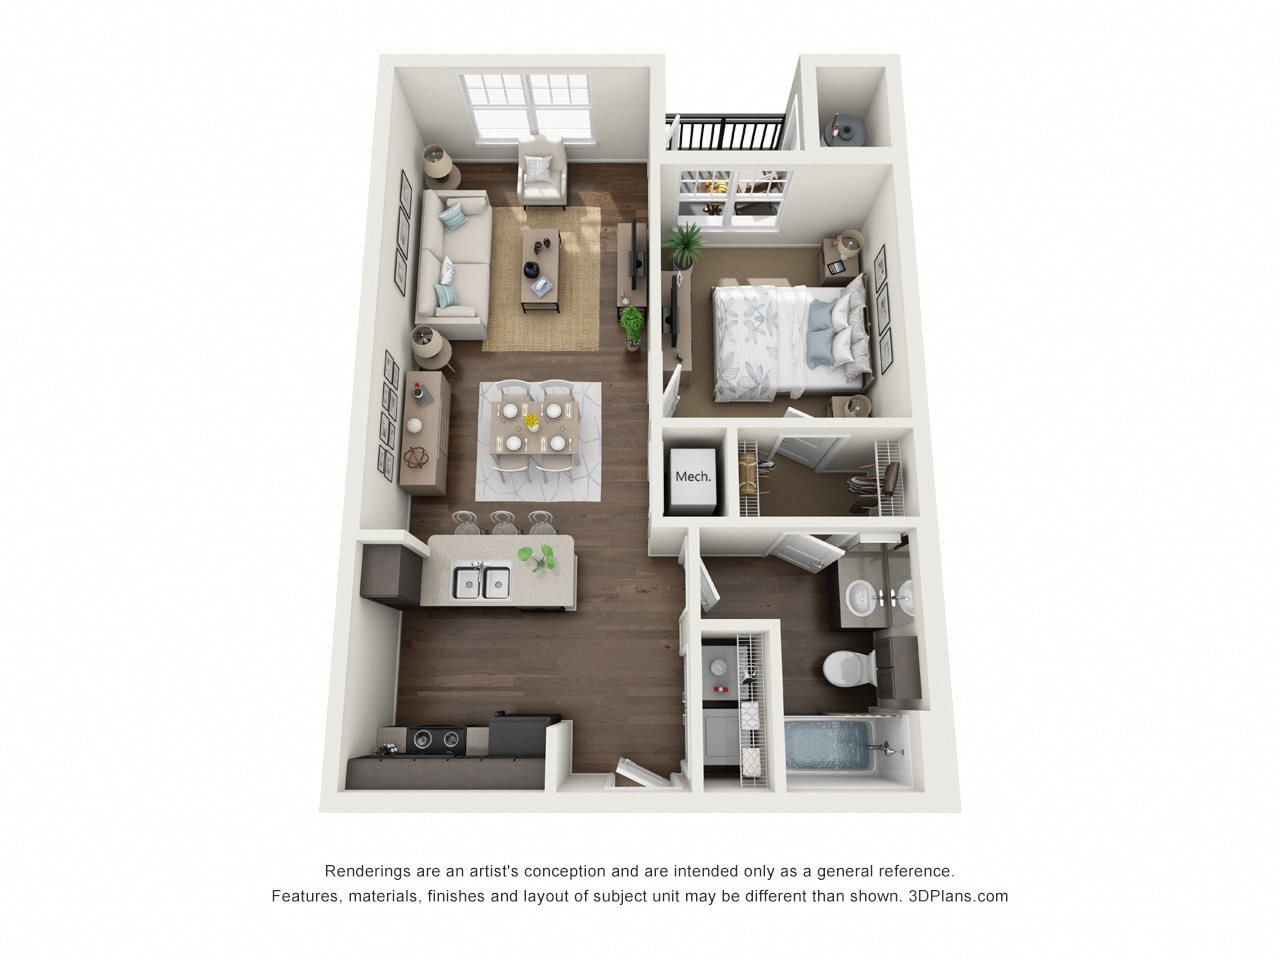 1 2 3 4 bedroom apartments in austin tx the bridge - One bedroom apartments in austin ...